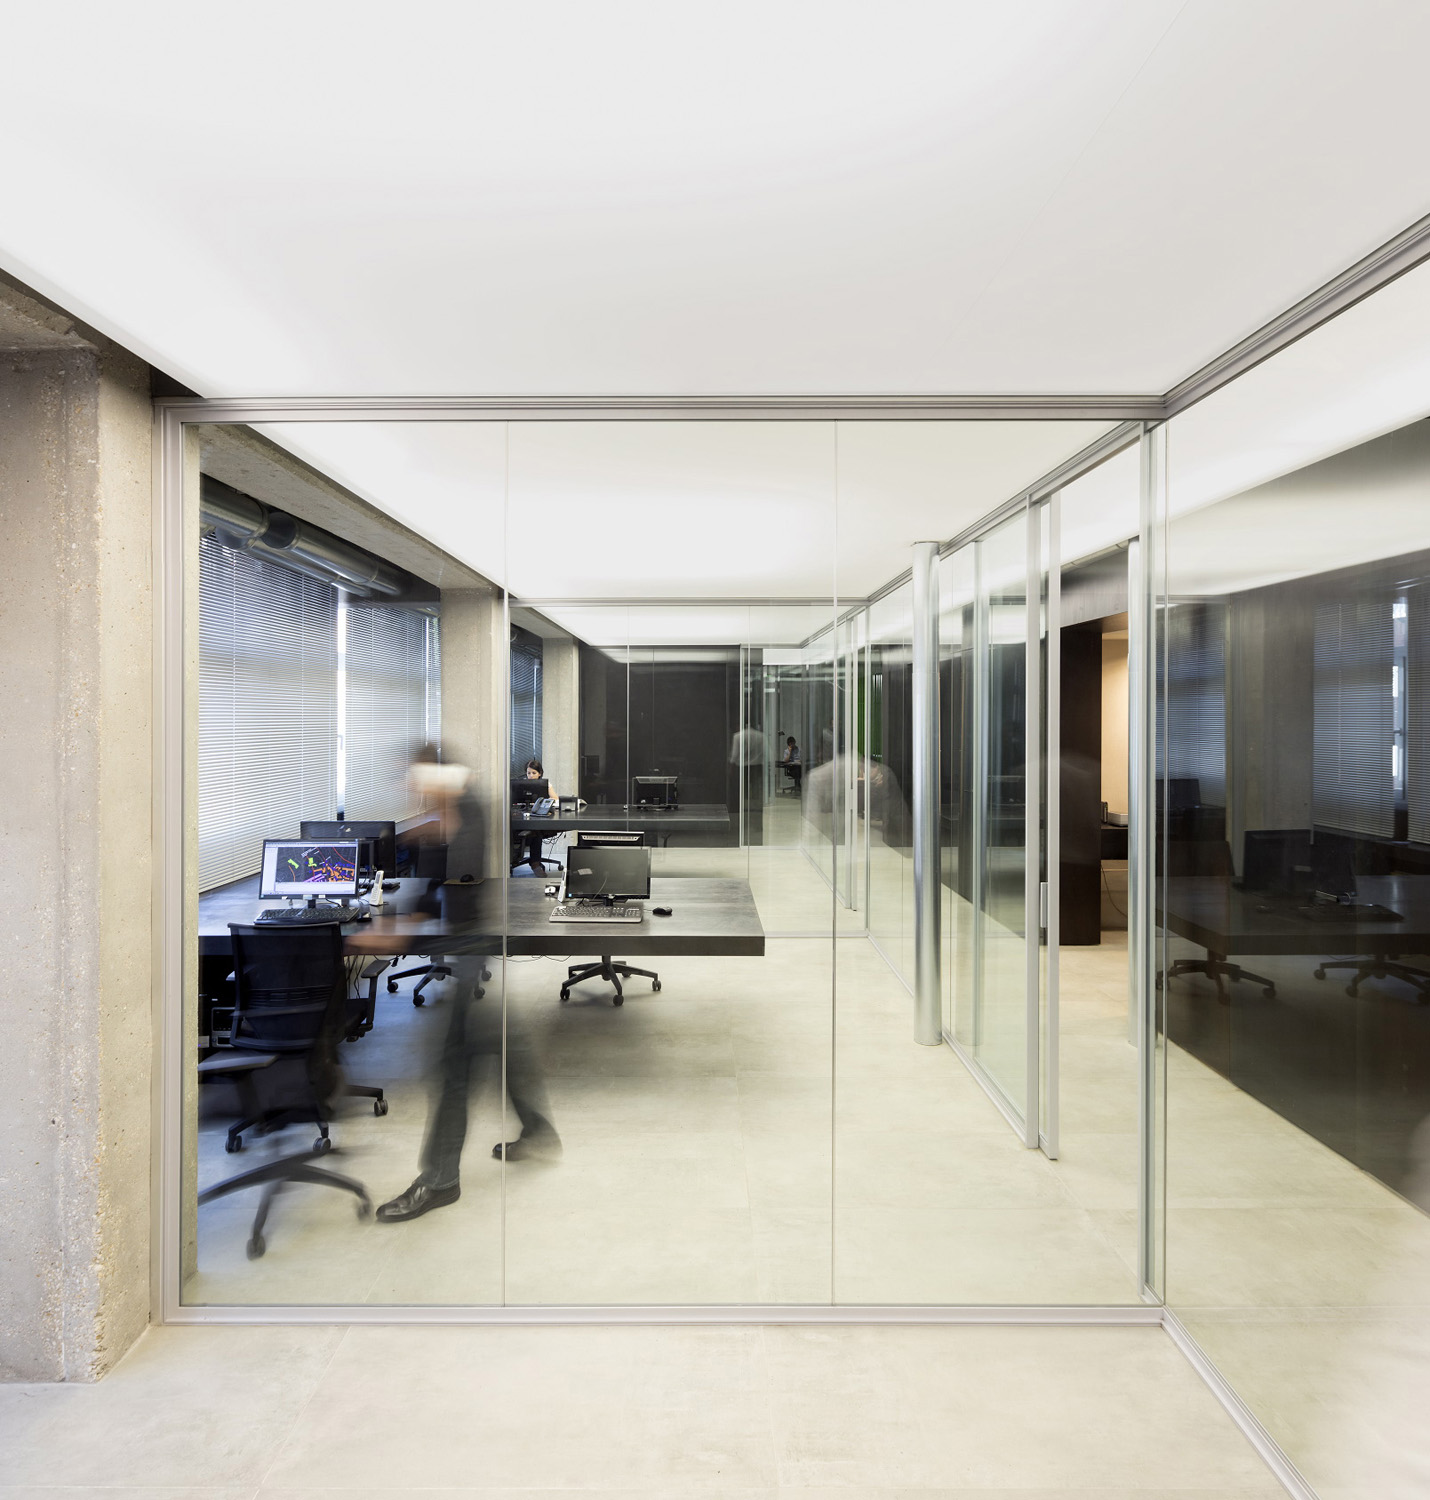 The open space with the light box ceiling